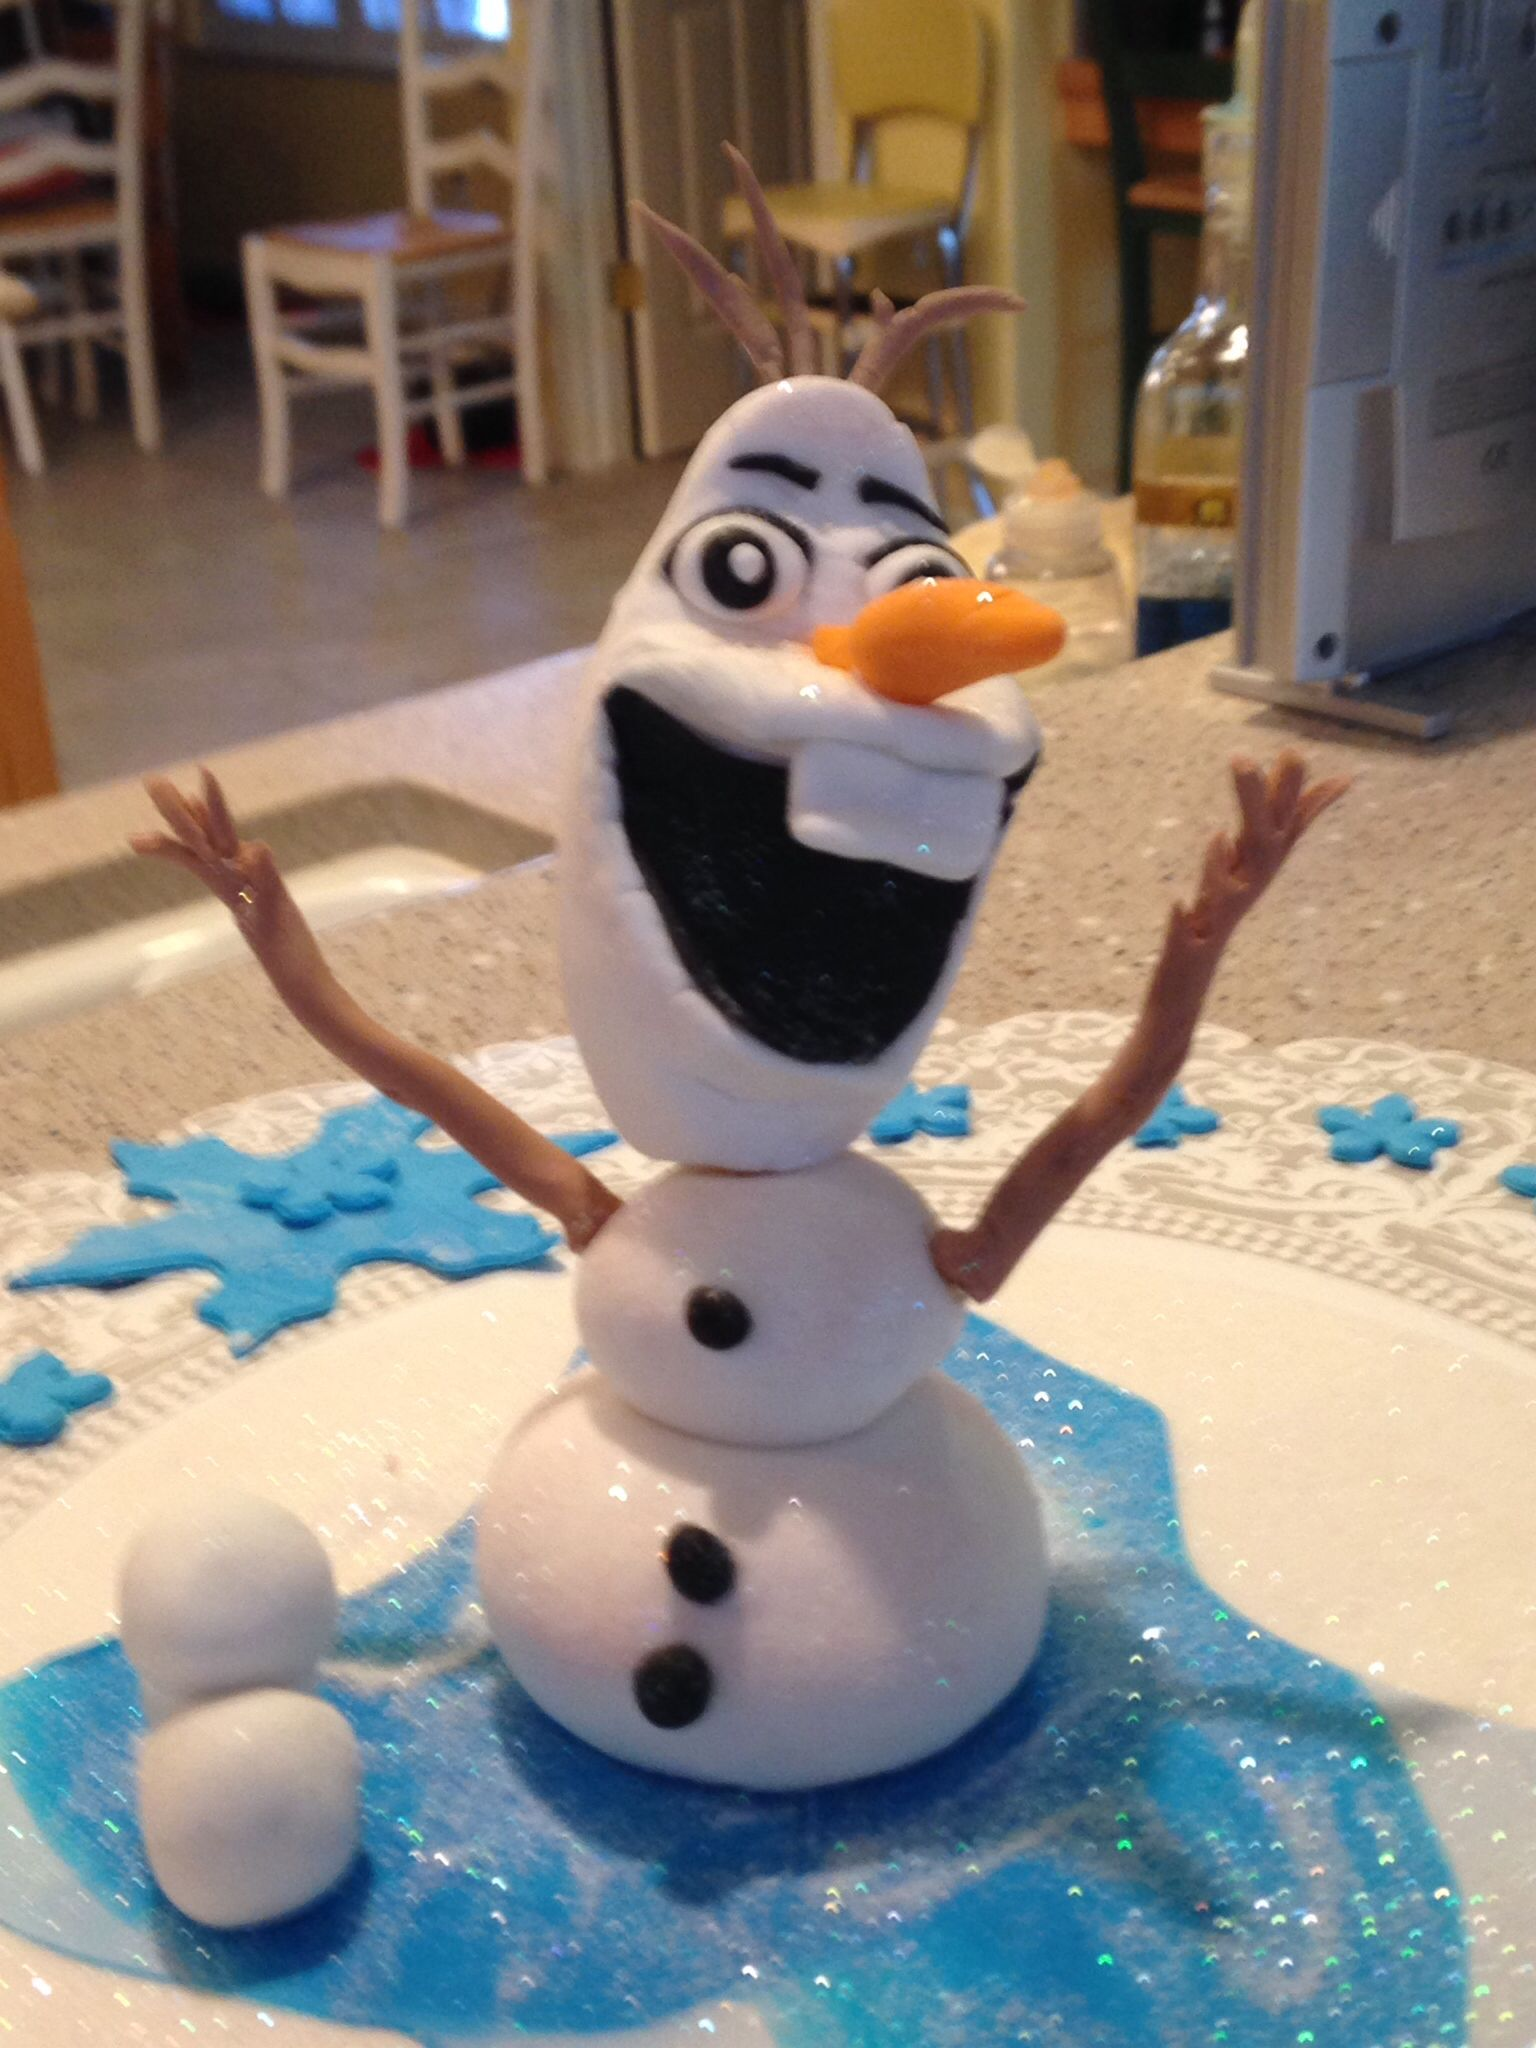 Olaf cake topper Disney Movie Frozen by Facebookacakelady This